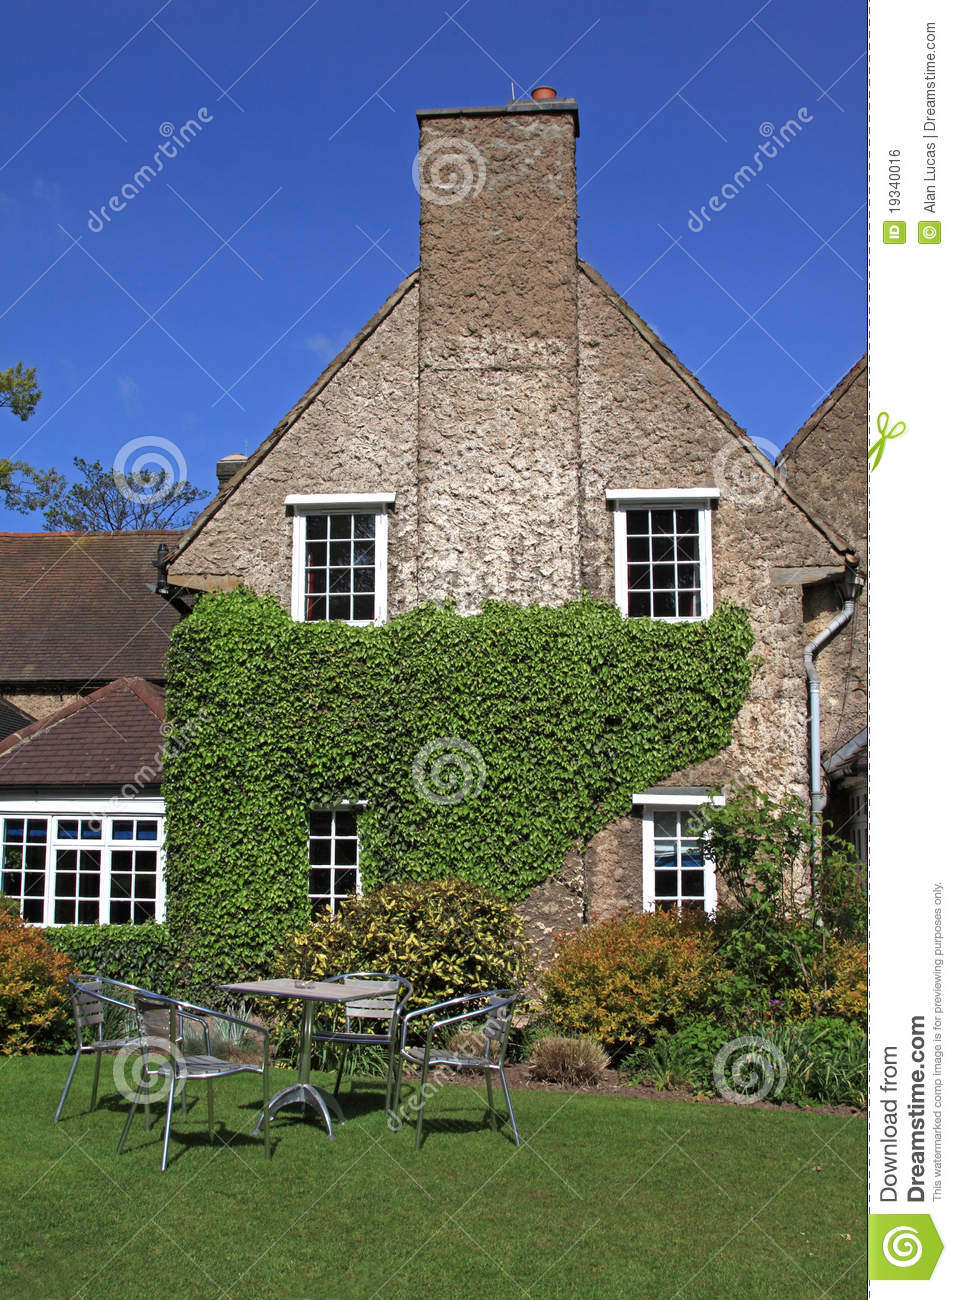 Country house hotel royalty free stock image image 19340016 for Country house online